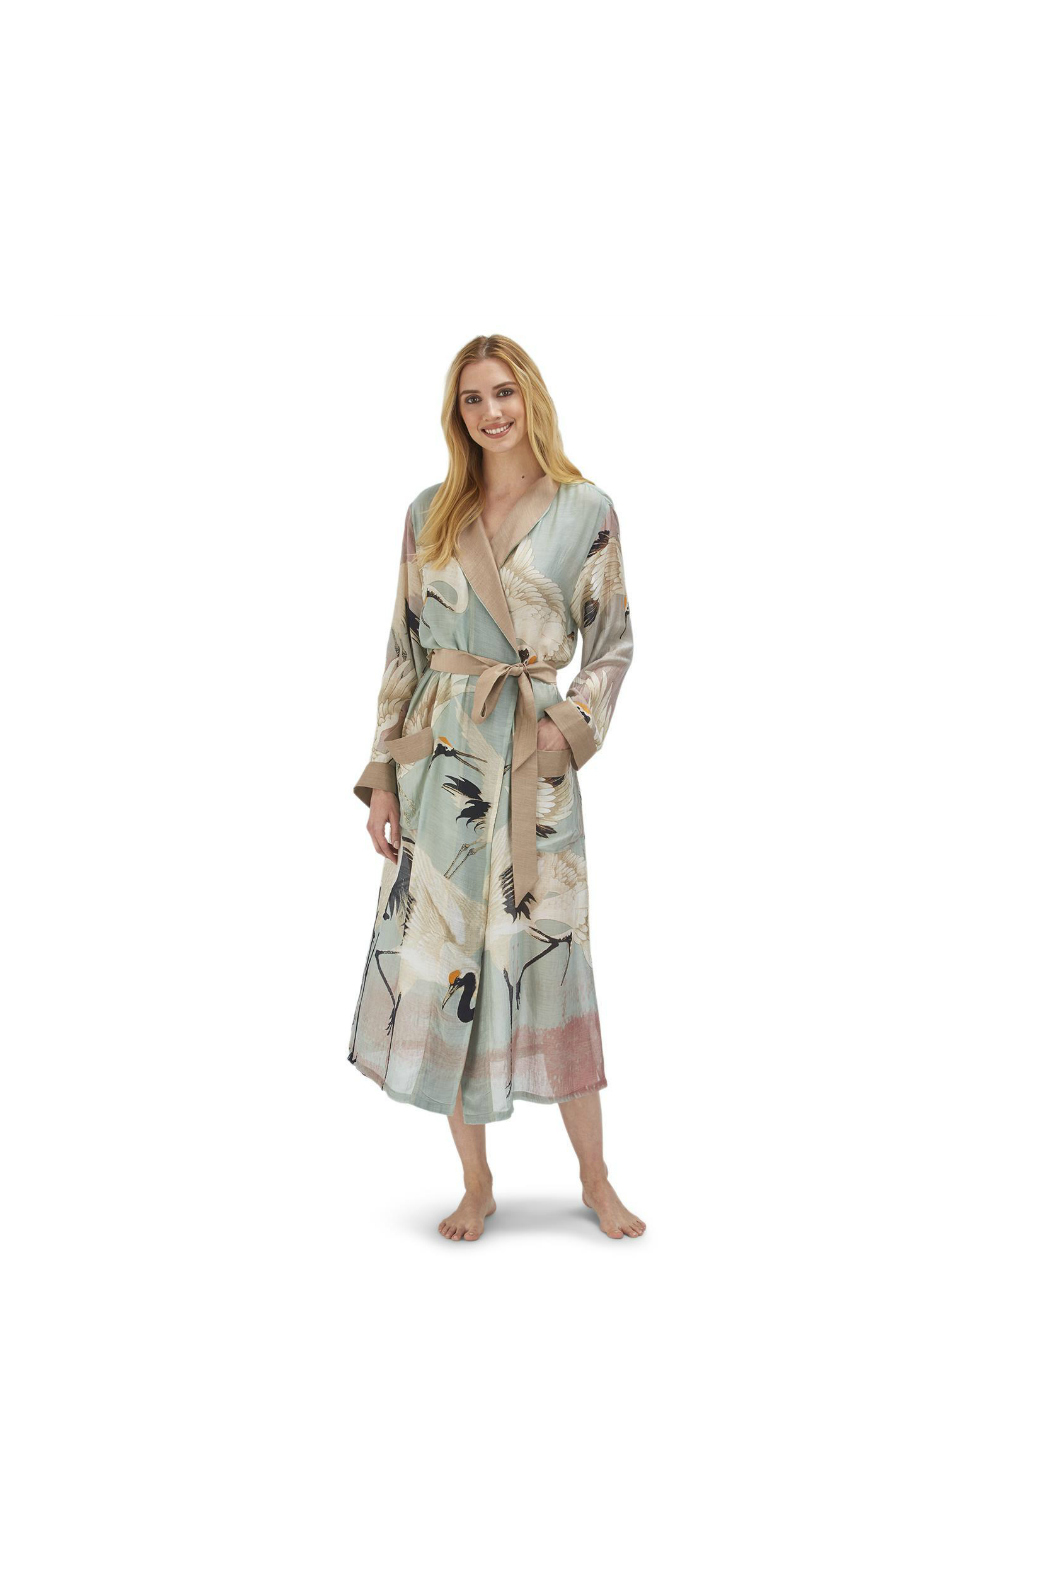 Two's Company Floral Viscose Robe Gown with Removable Waist Tie Closure - Main Image